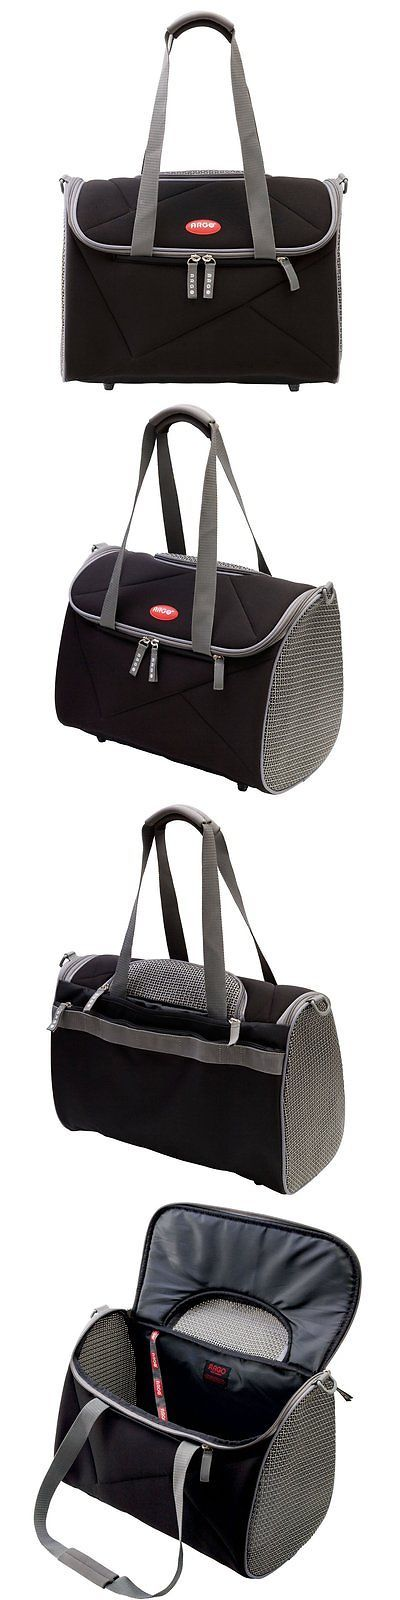 Other Pet Supplies 301: Argo By Teafco Pet Avion Airline Approved Pet Carrier, Black, Medium -> BUY IT NOW ONLY: $87.97 on eBay!